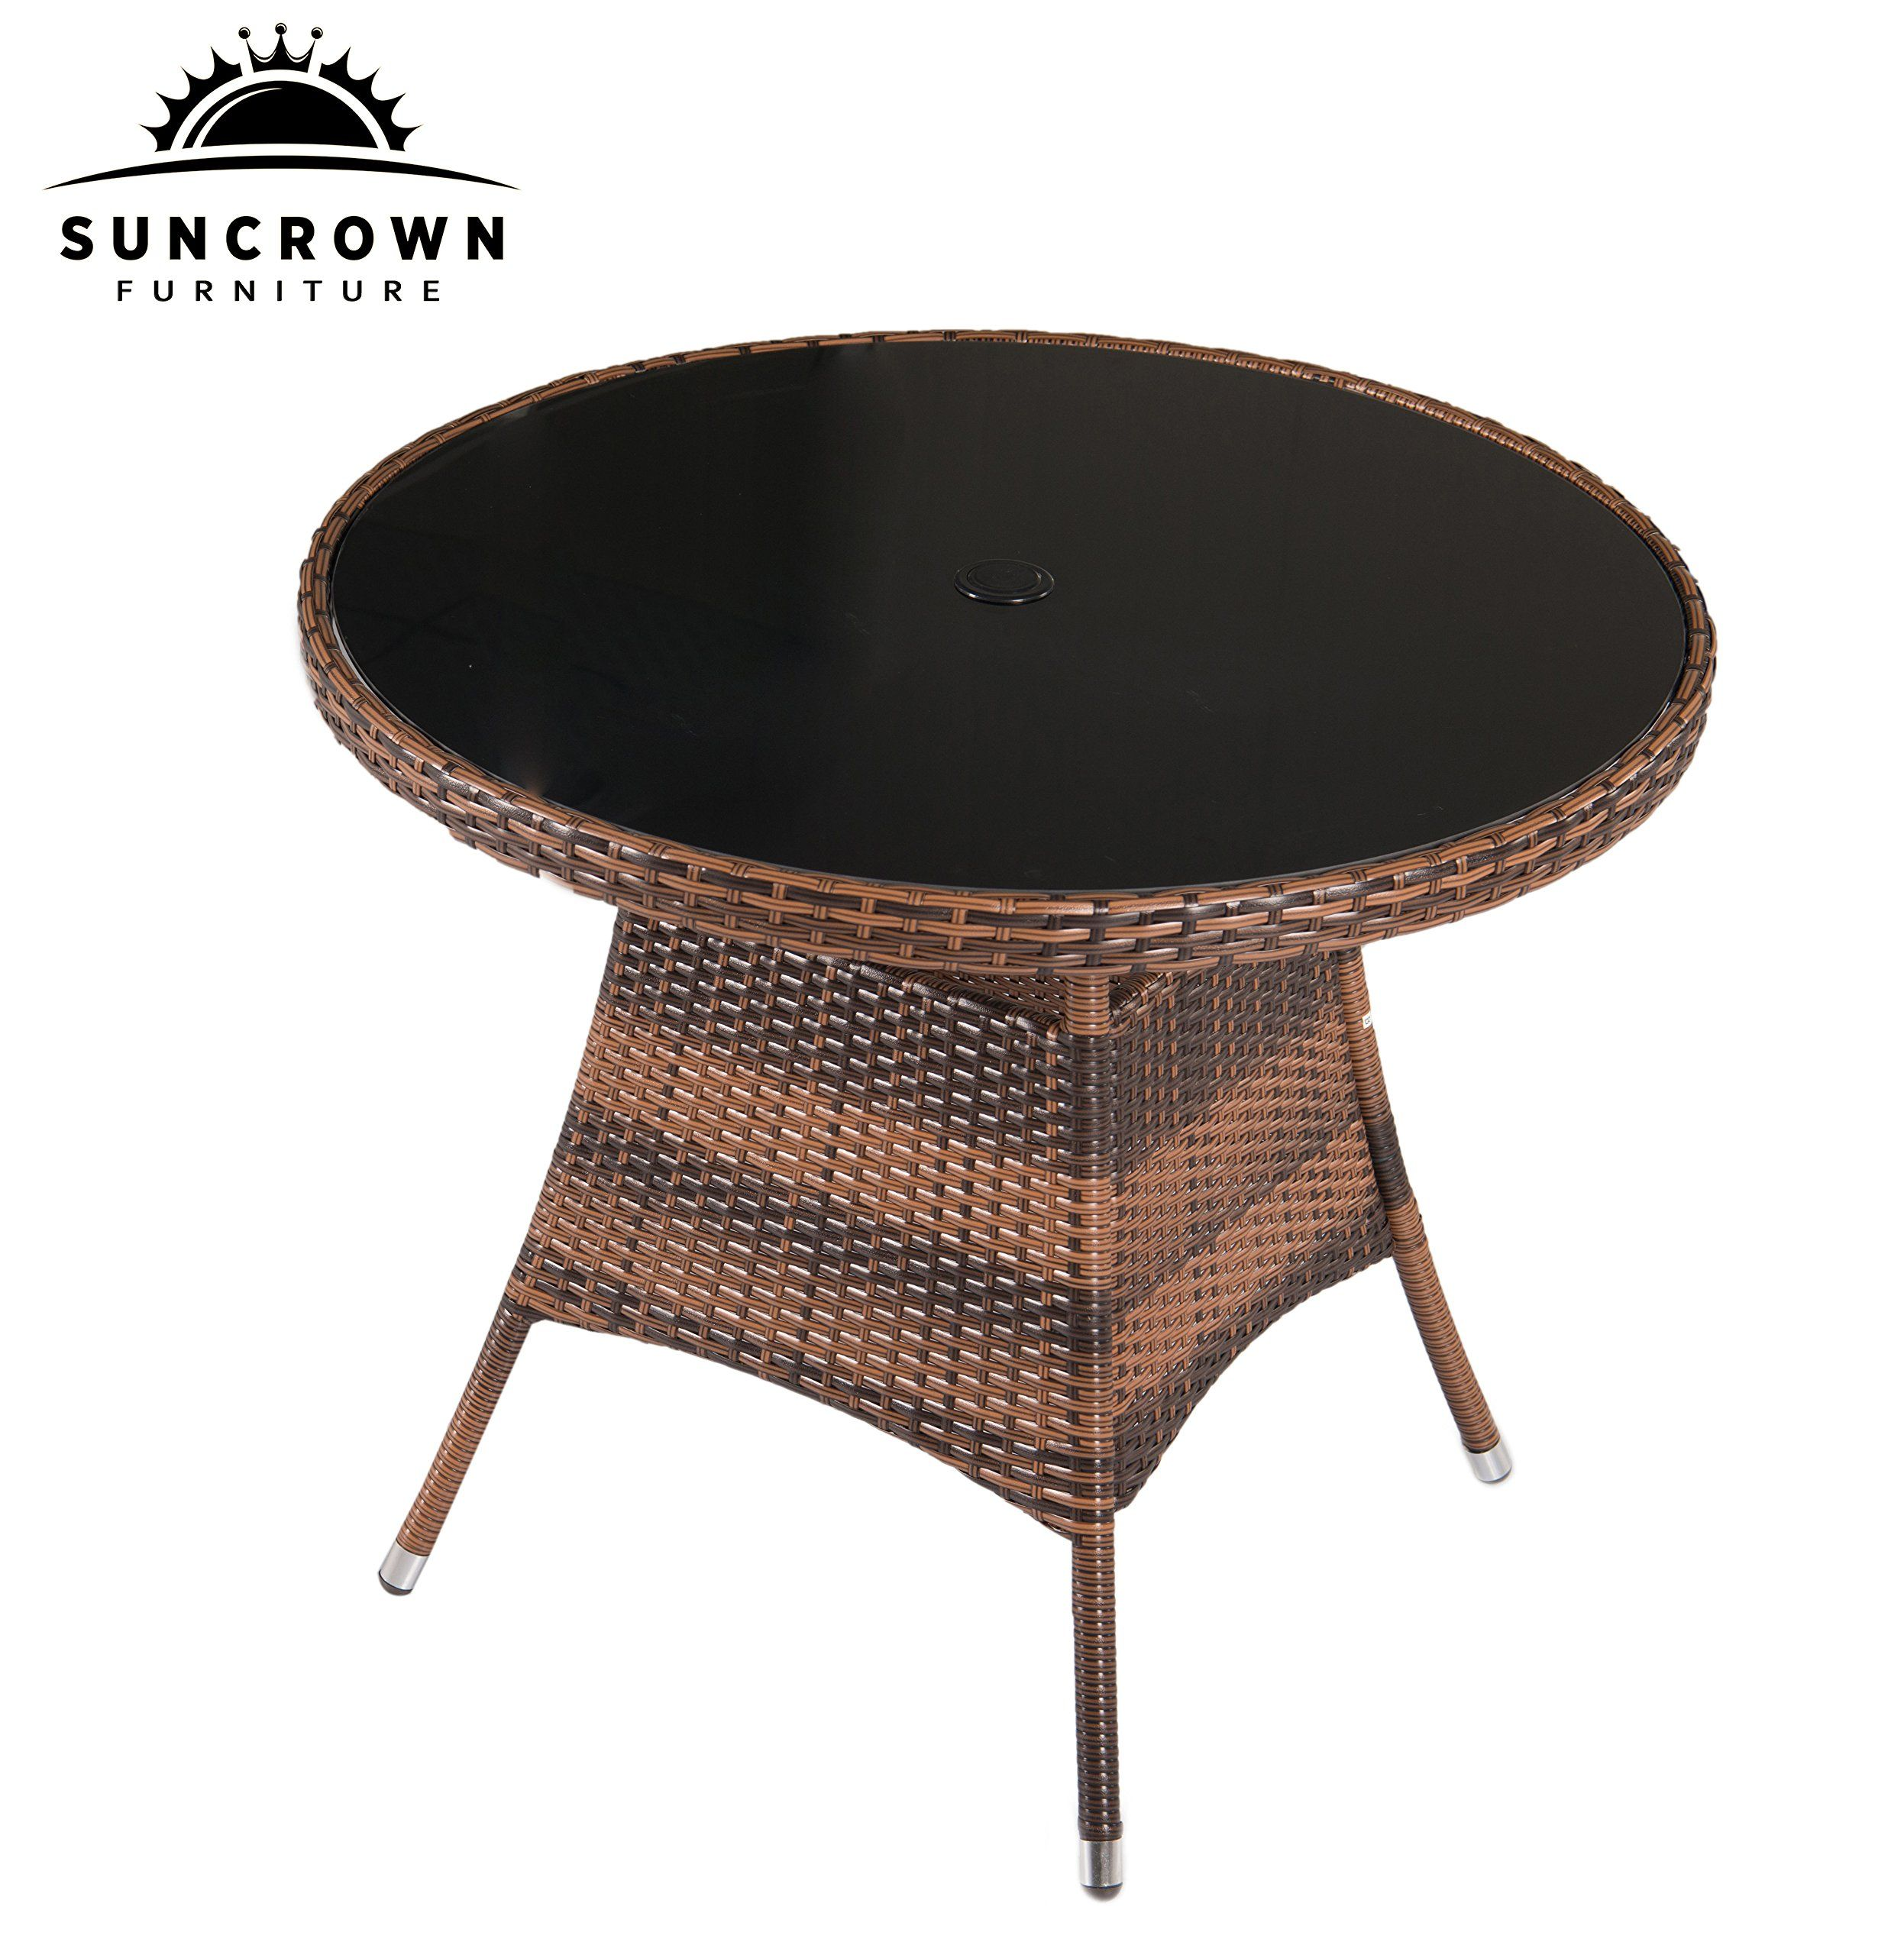 Suncrown Outdoor Furniture Allweather Wicker Round Dining Table